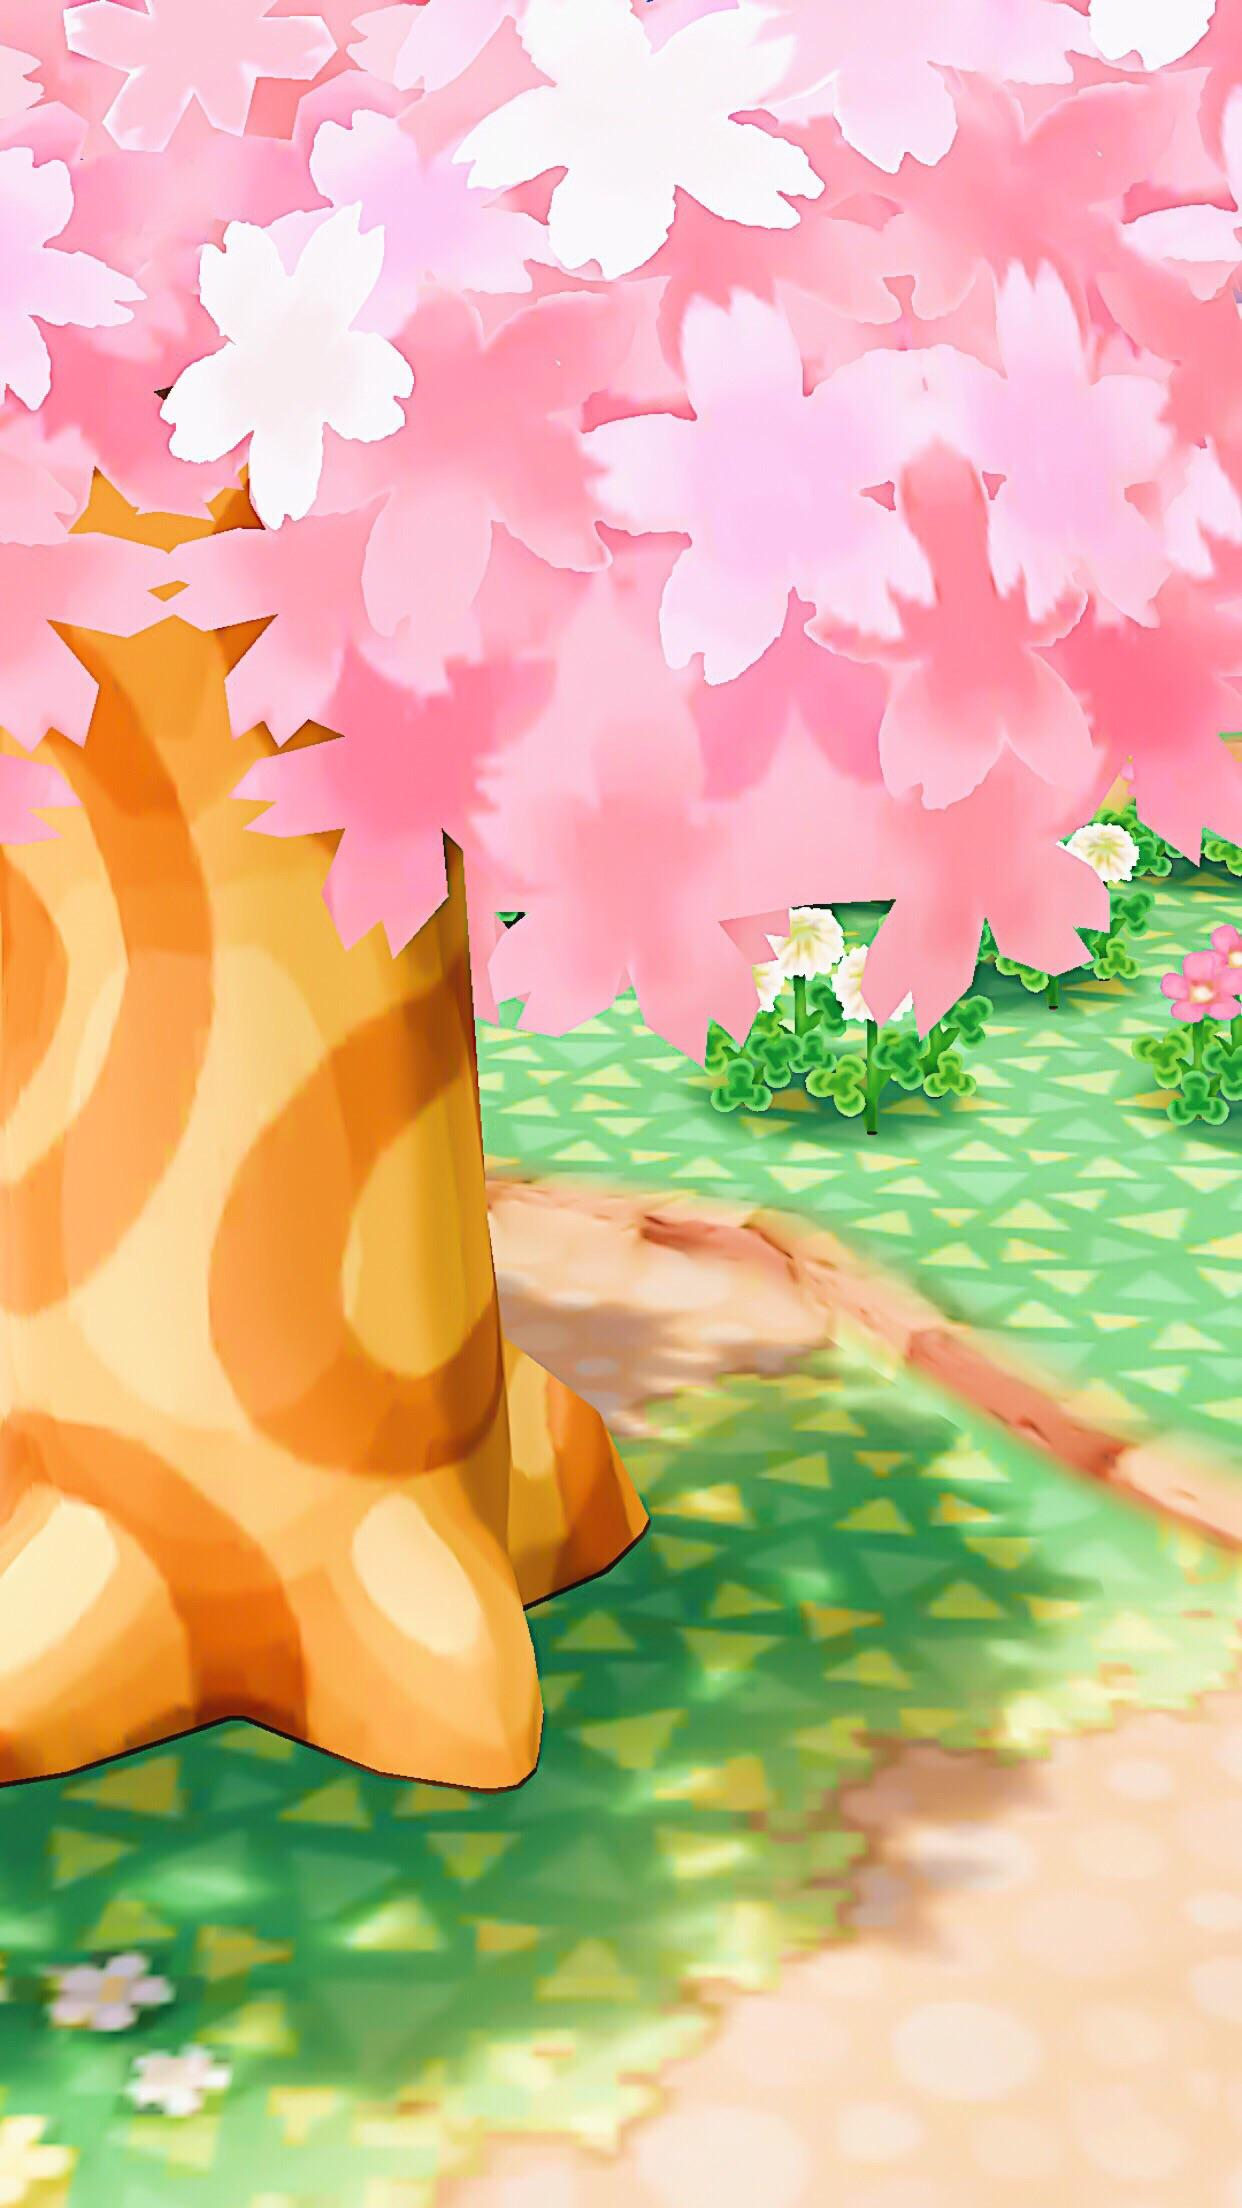 Animal Crossing Phone Wallpapers Wallpaper Cave